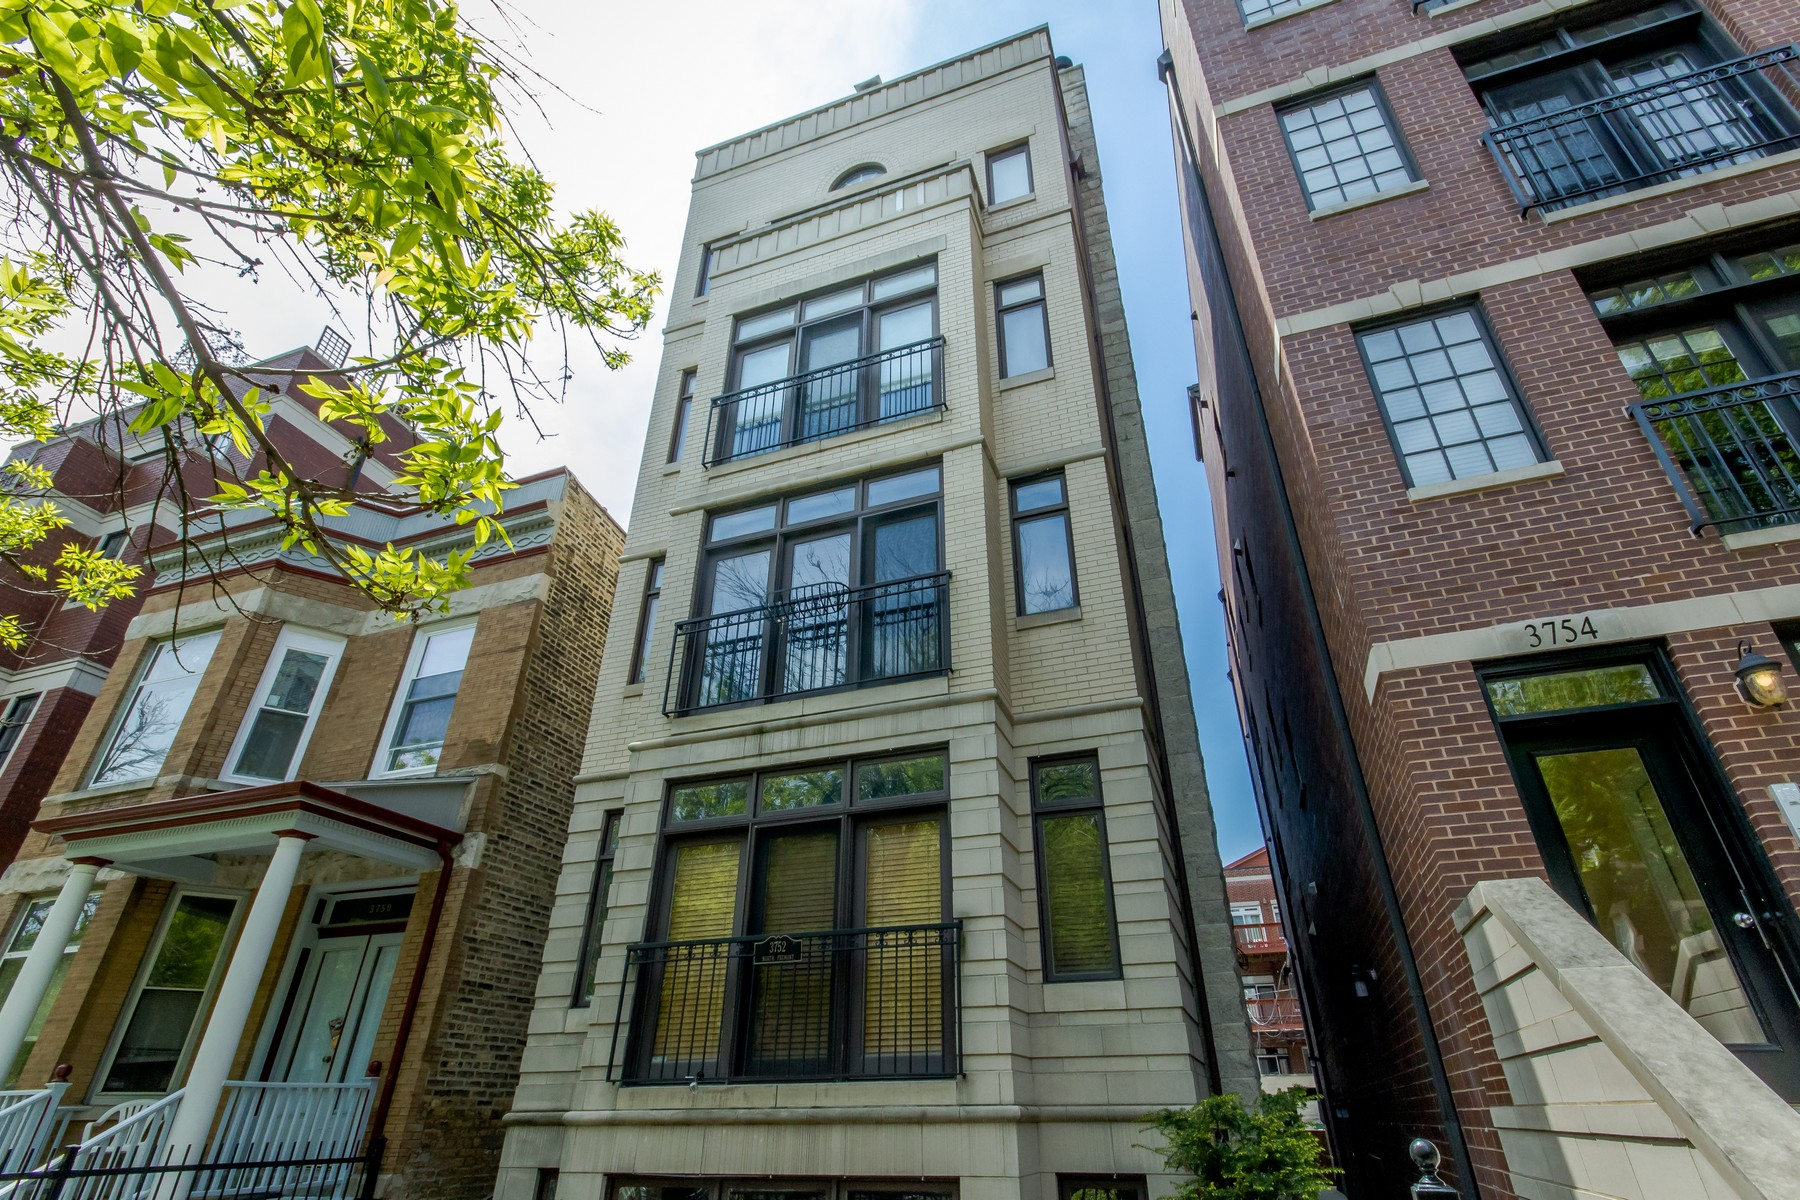 Duplex for Sale at Meticulously Maintained Lakeview Duplex-Up 3752 N Fremont Street Unit 4 Lakeview, Chicago, Illinois, 60613 United States